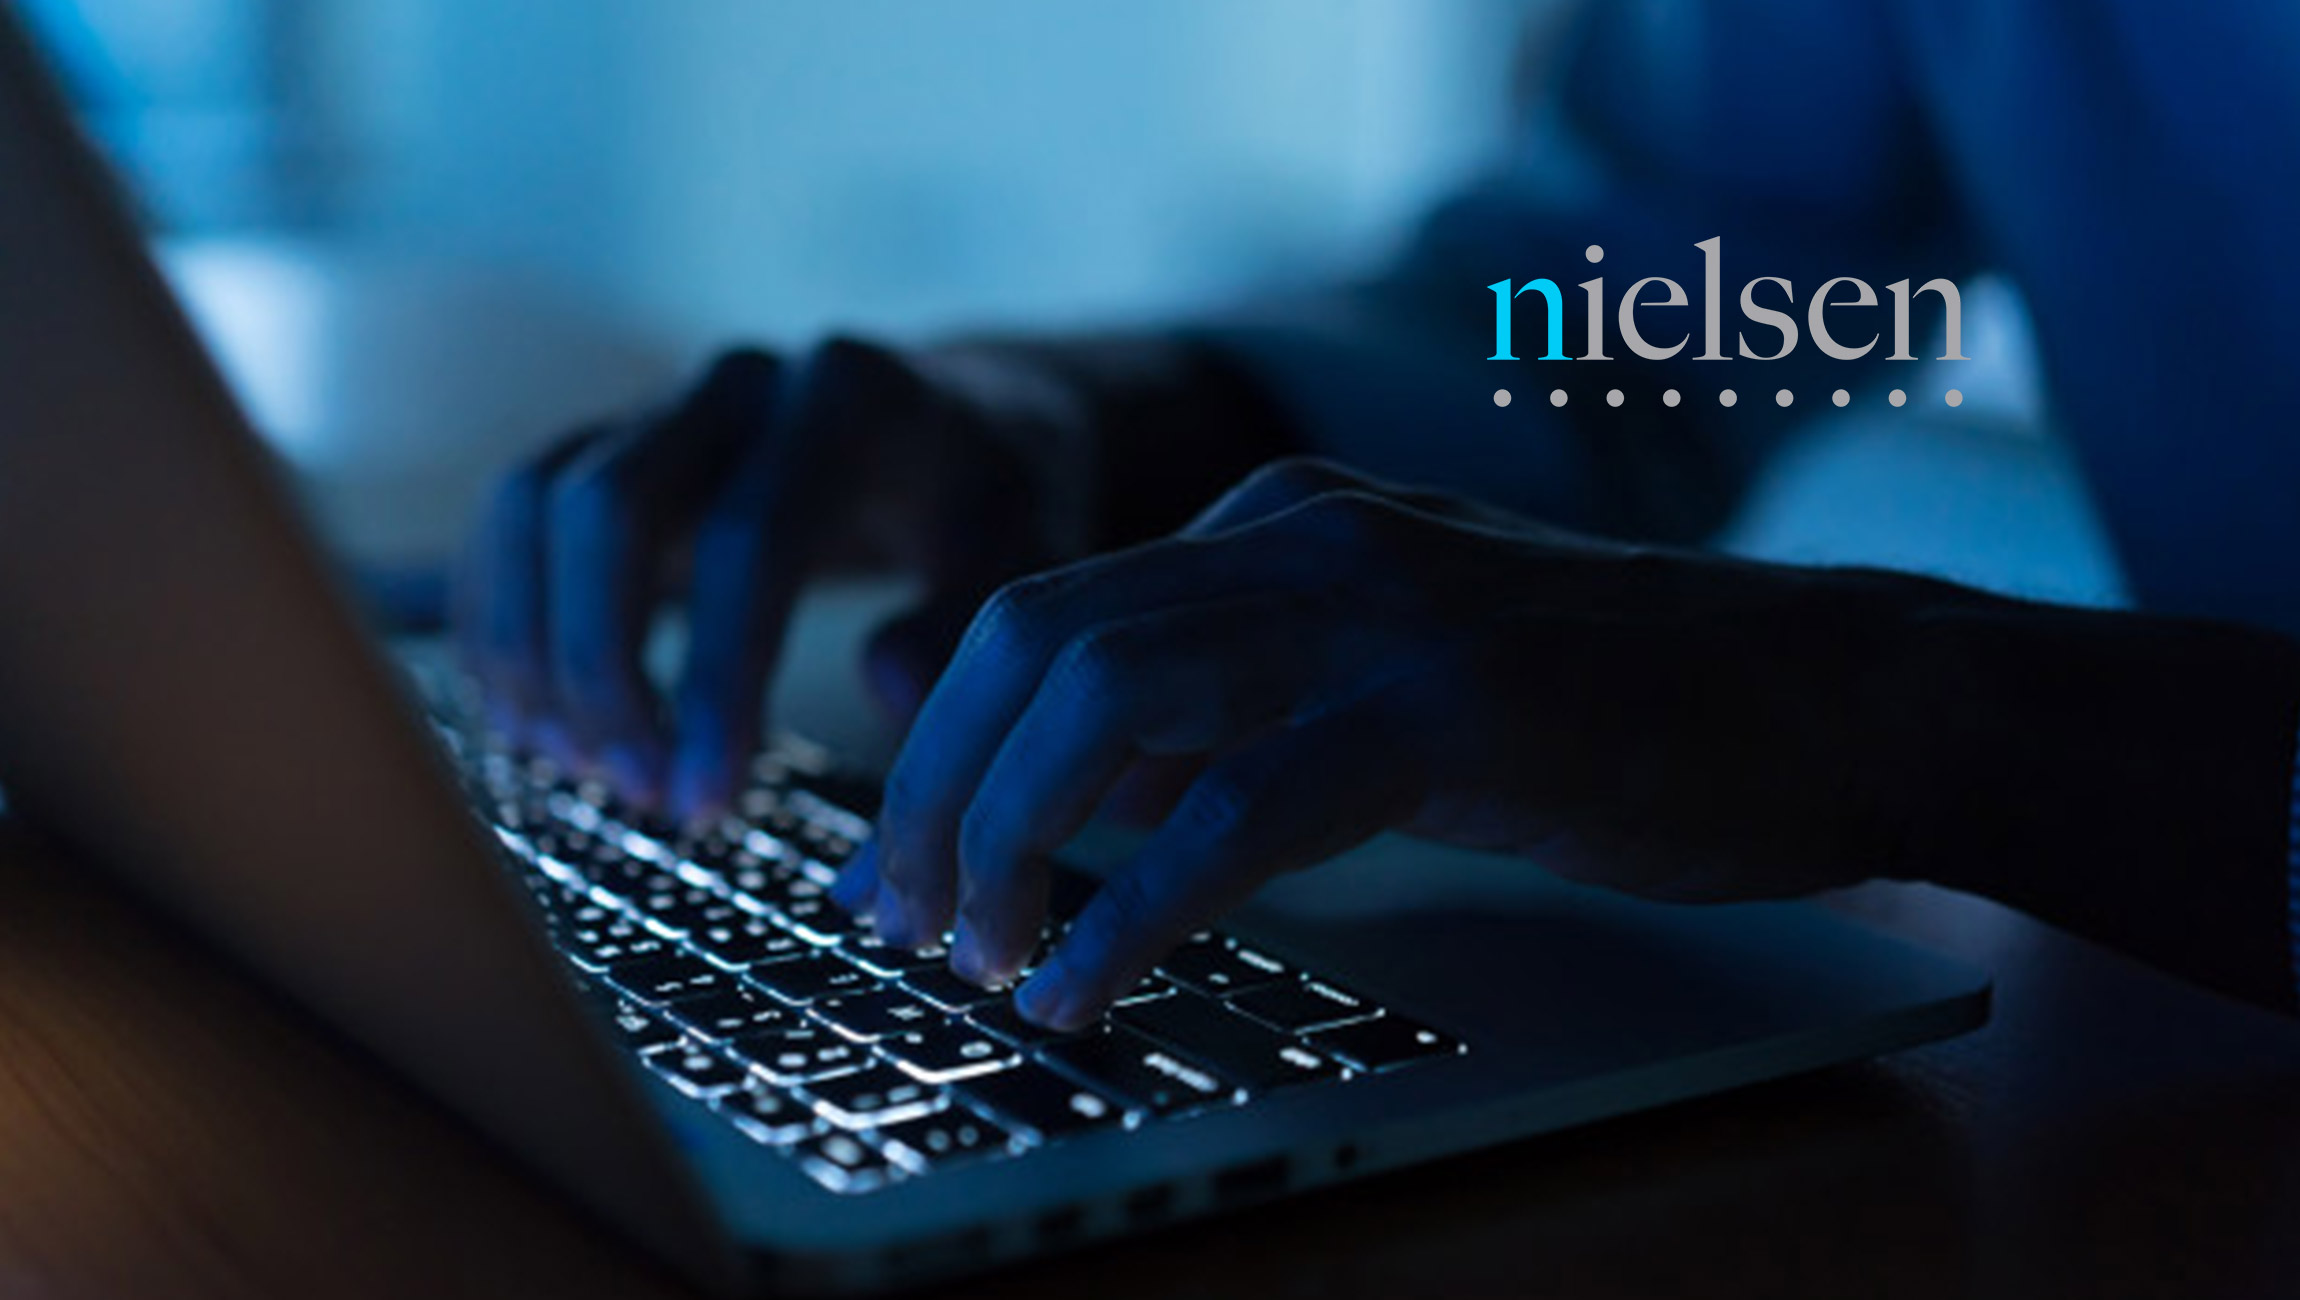 Advanced Alliance Between Nielsen And Trax Brings New Shelf Insight Tools To U.S. Brands